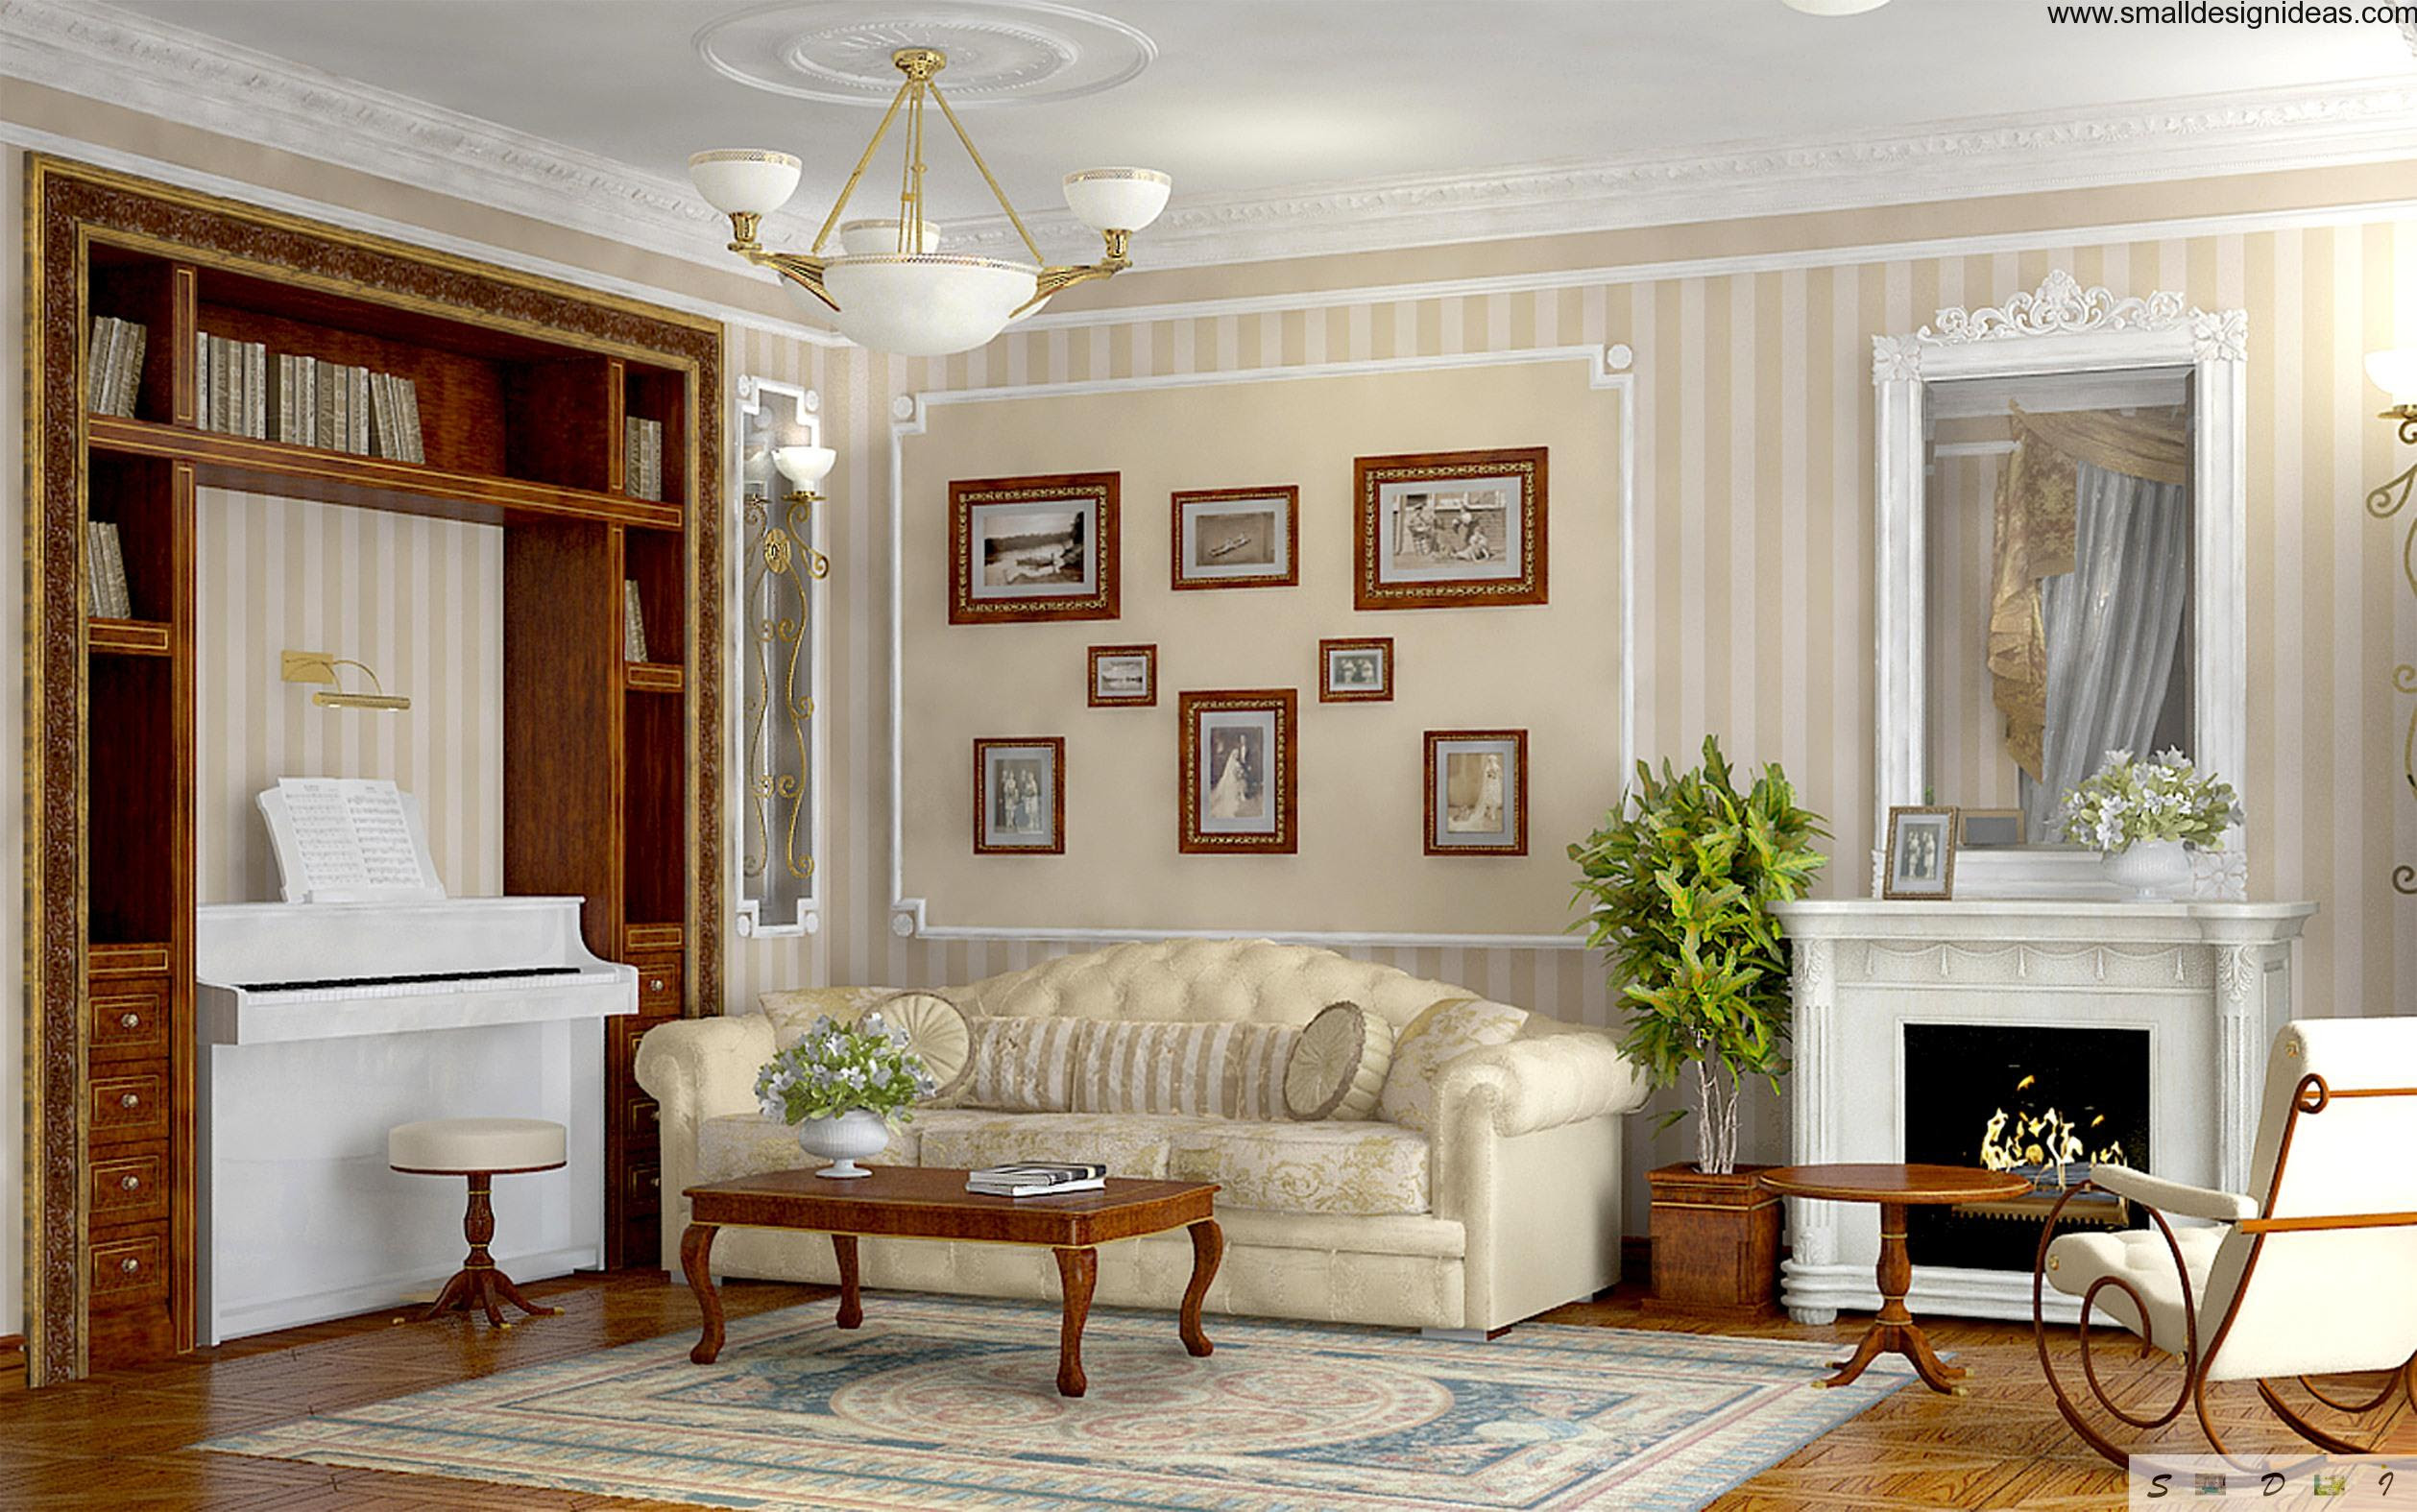 Top 5 Modern Interior Trends in 2012 Home Decorating